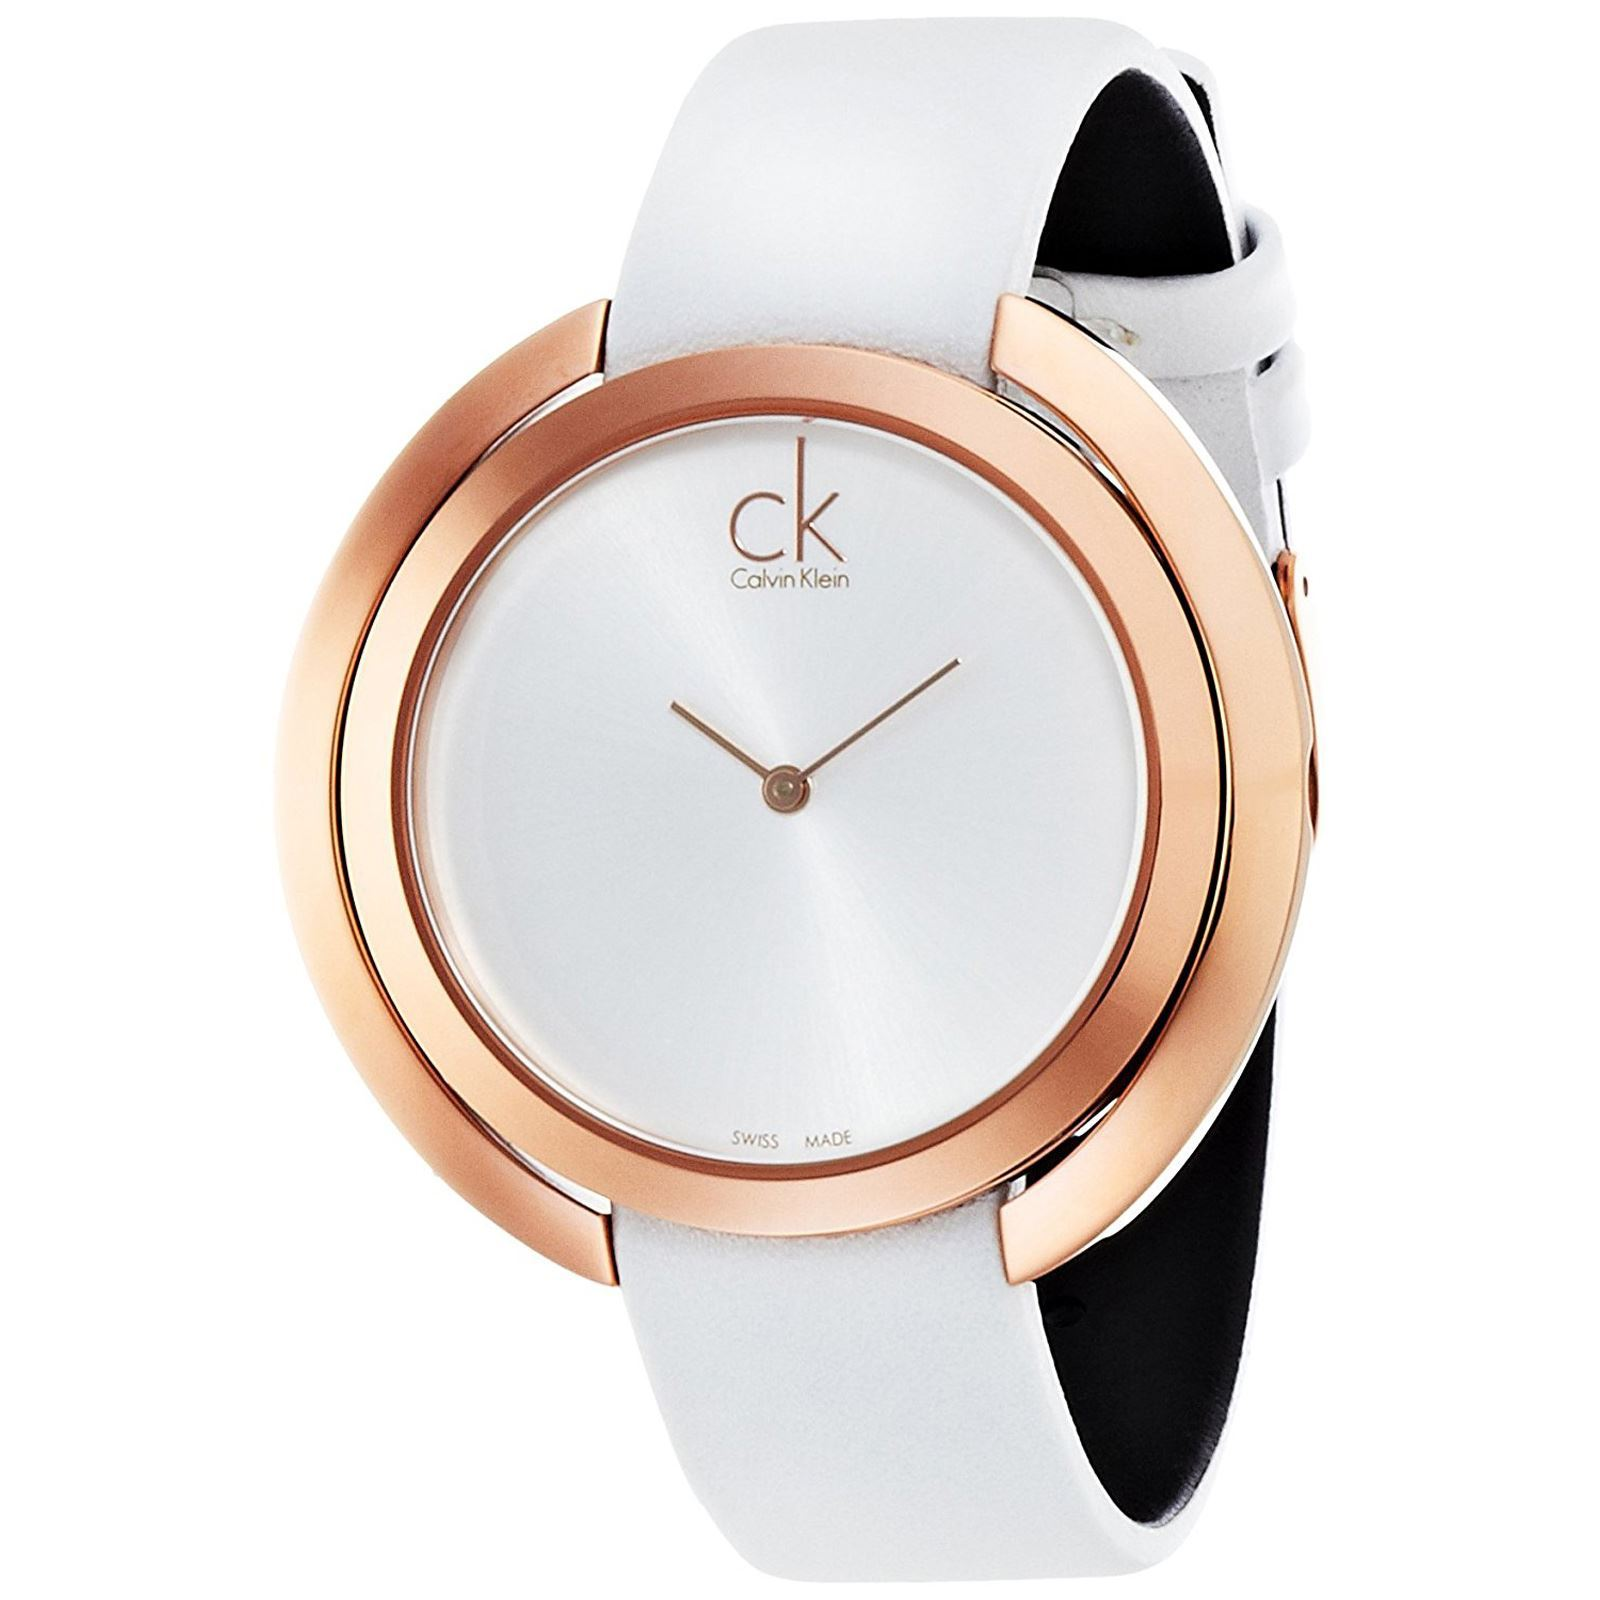 calvin klein montre avec bracelet en cuir blanc brandalley. Black Bedroom Furniture Sets. Home Design Ideas